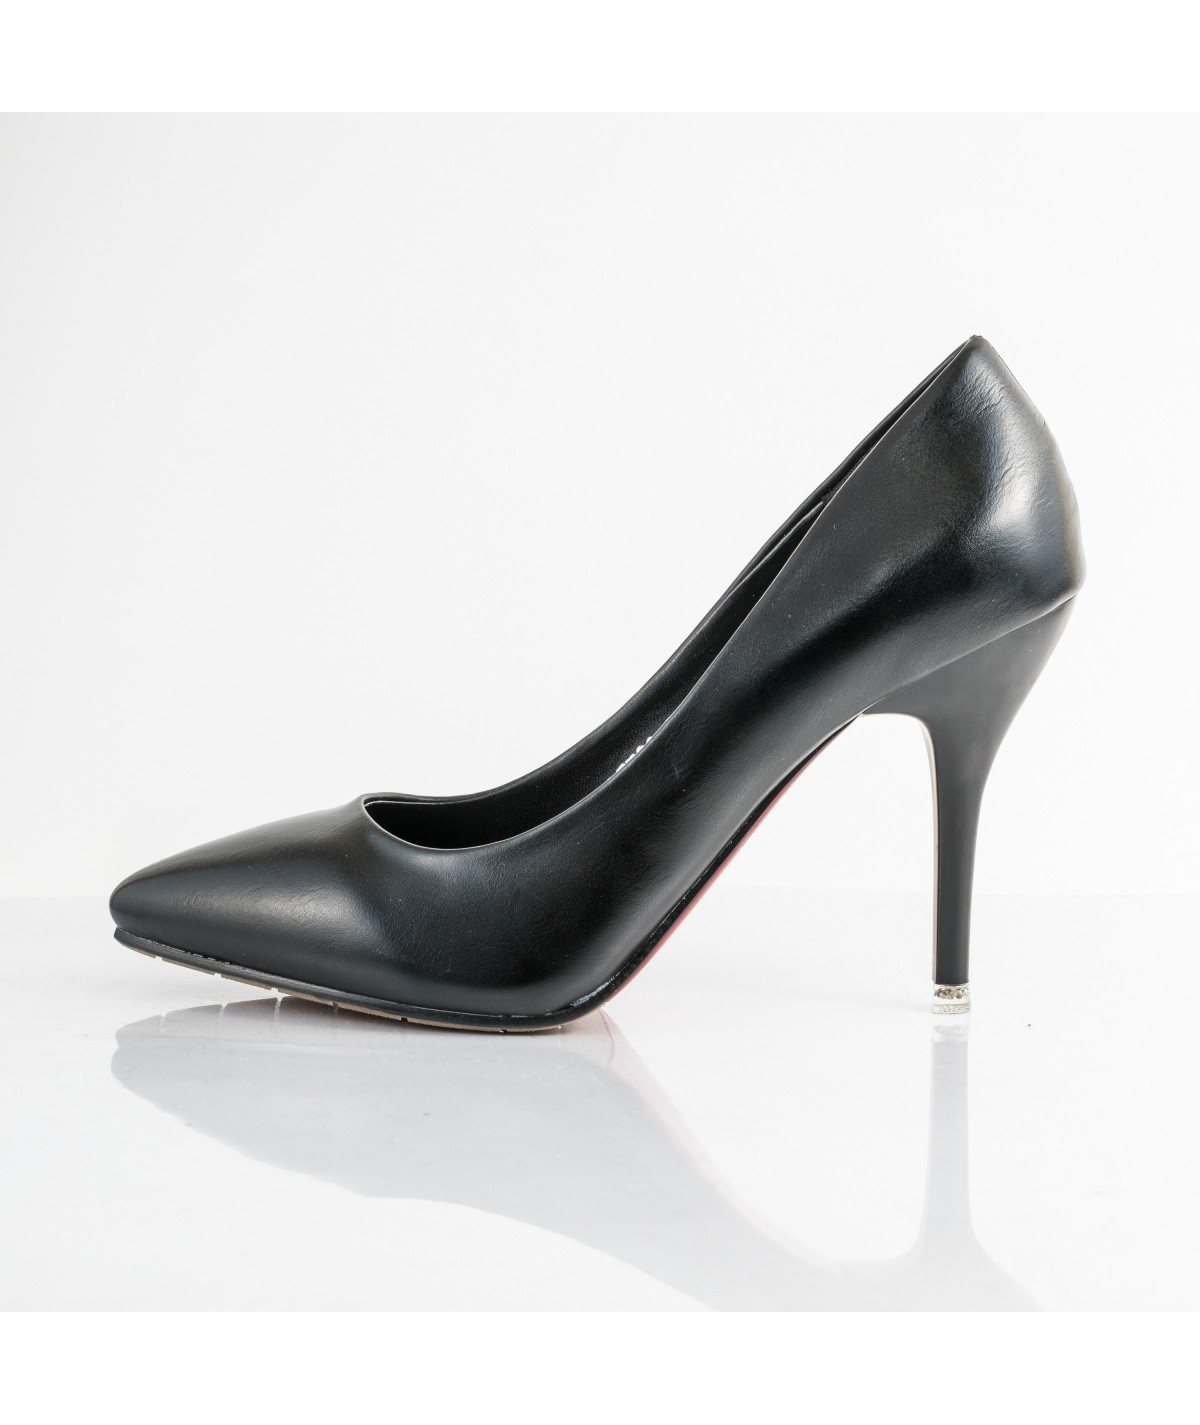 Black Leather pumps - Allure